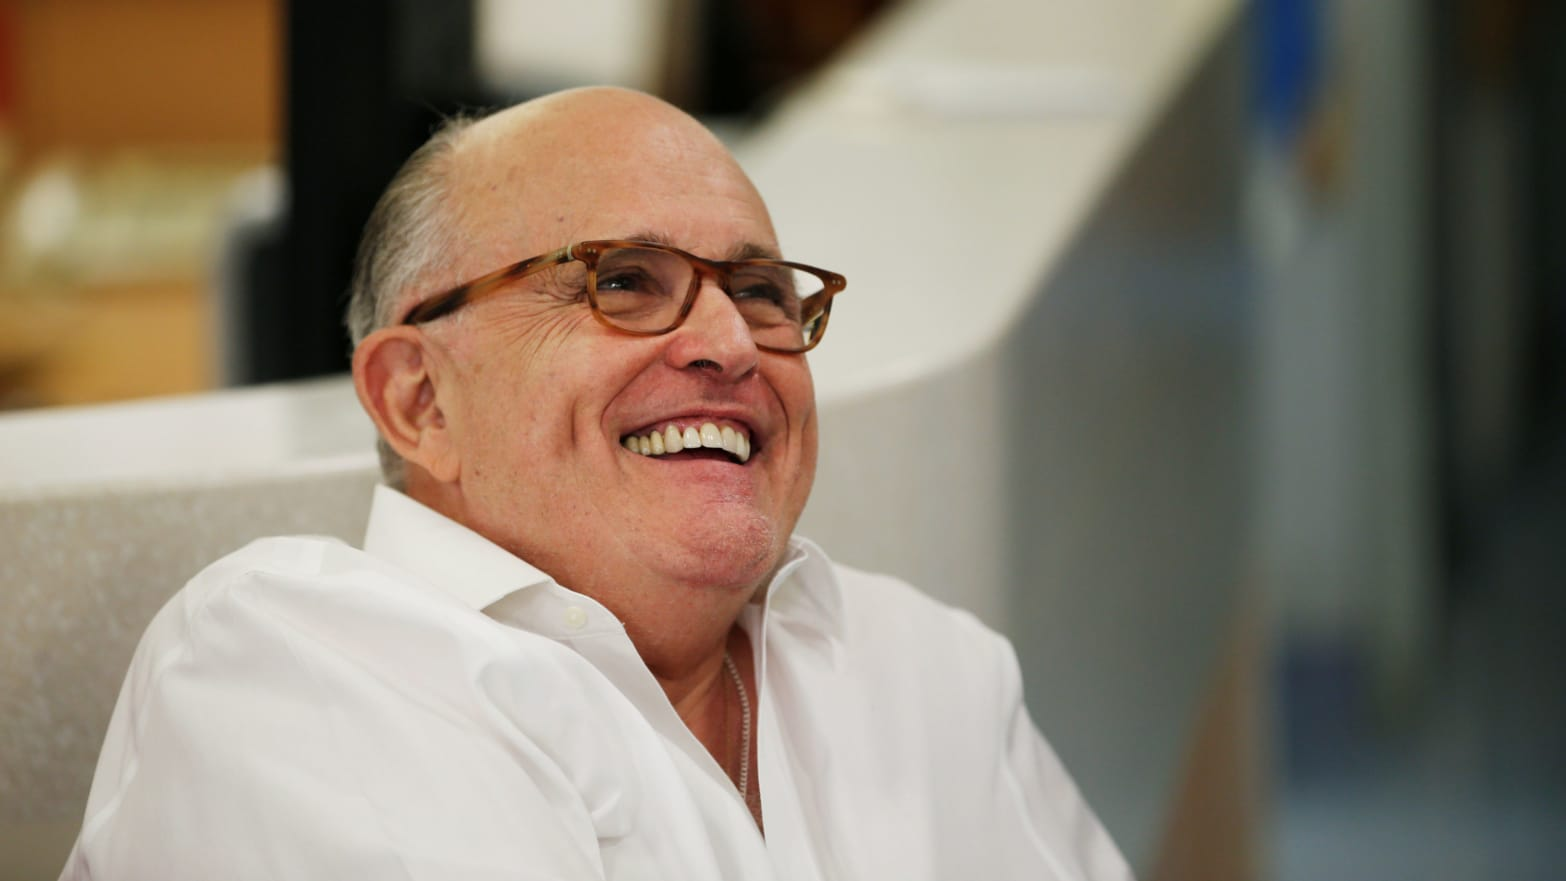 Giuliani: 'Nothing Wrong' With Getting Political Dirt From Russians